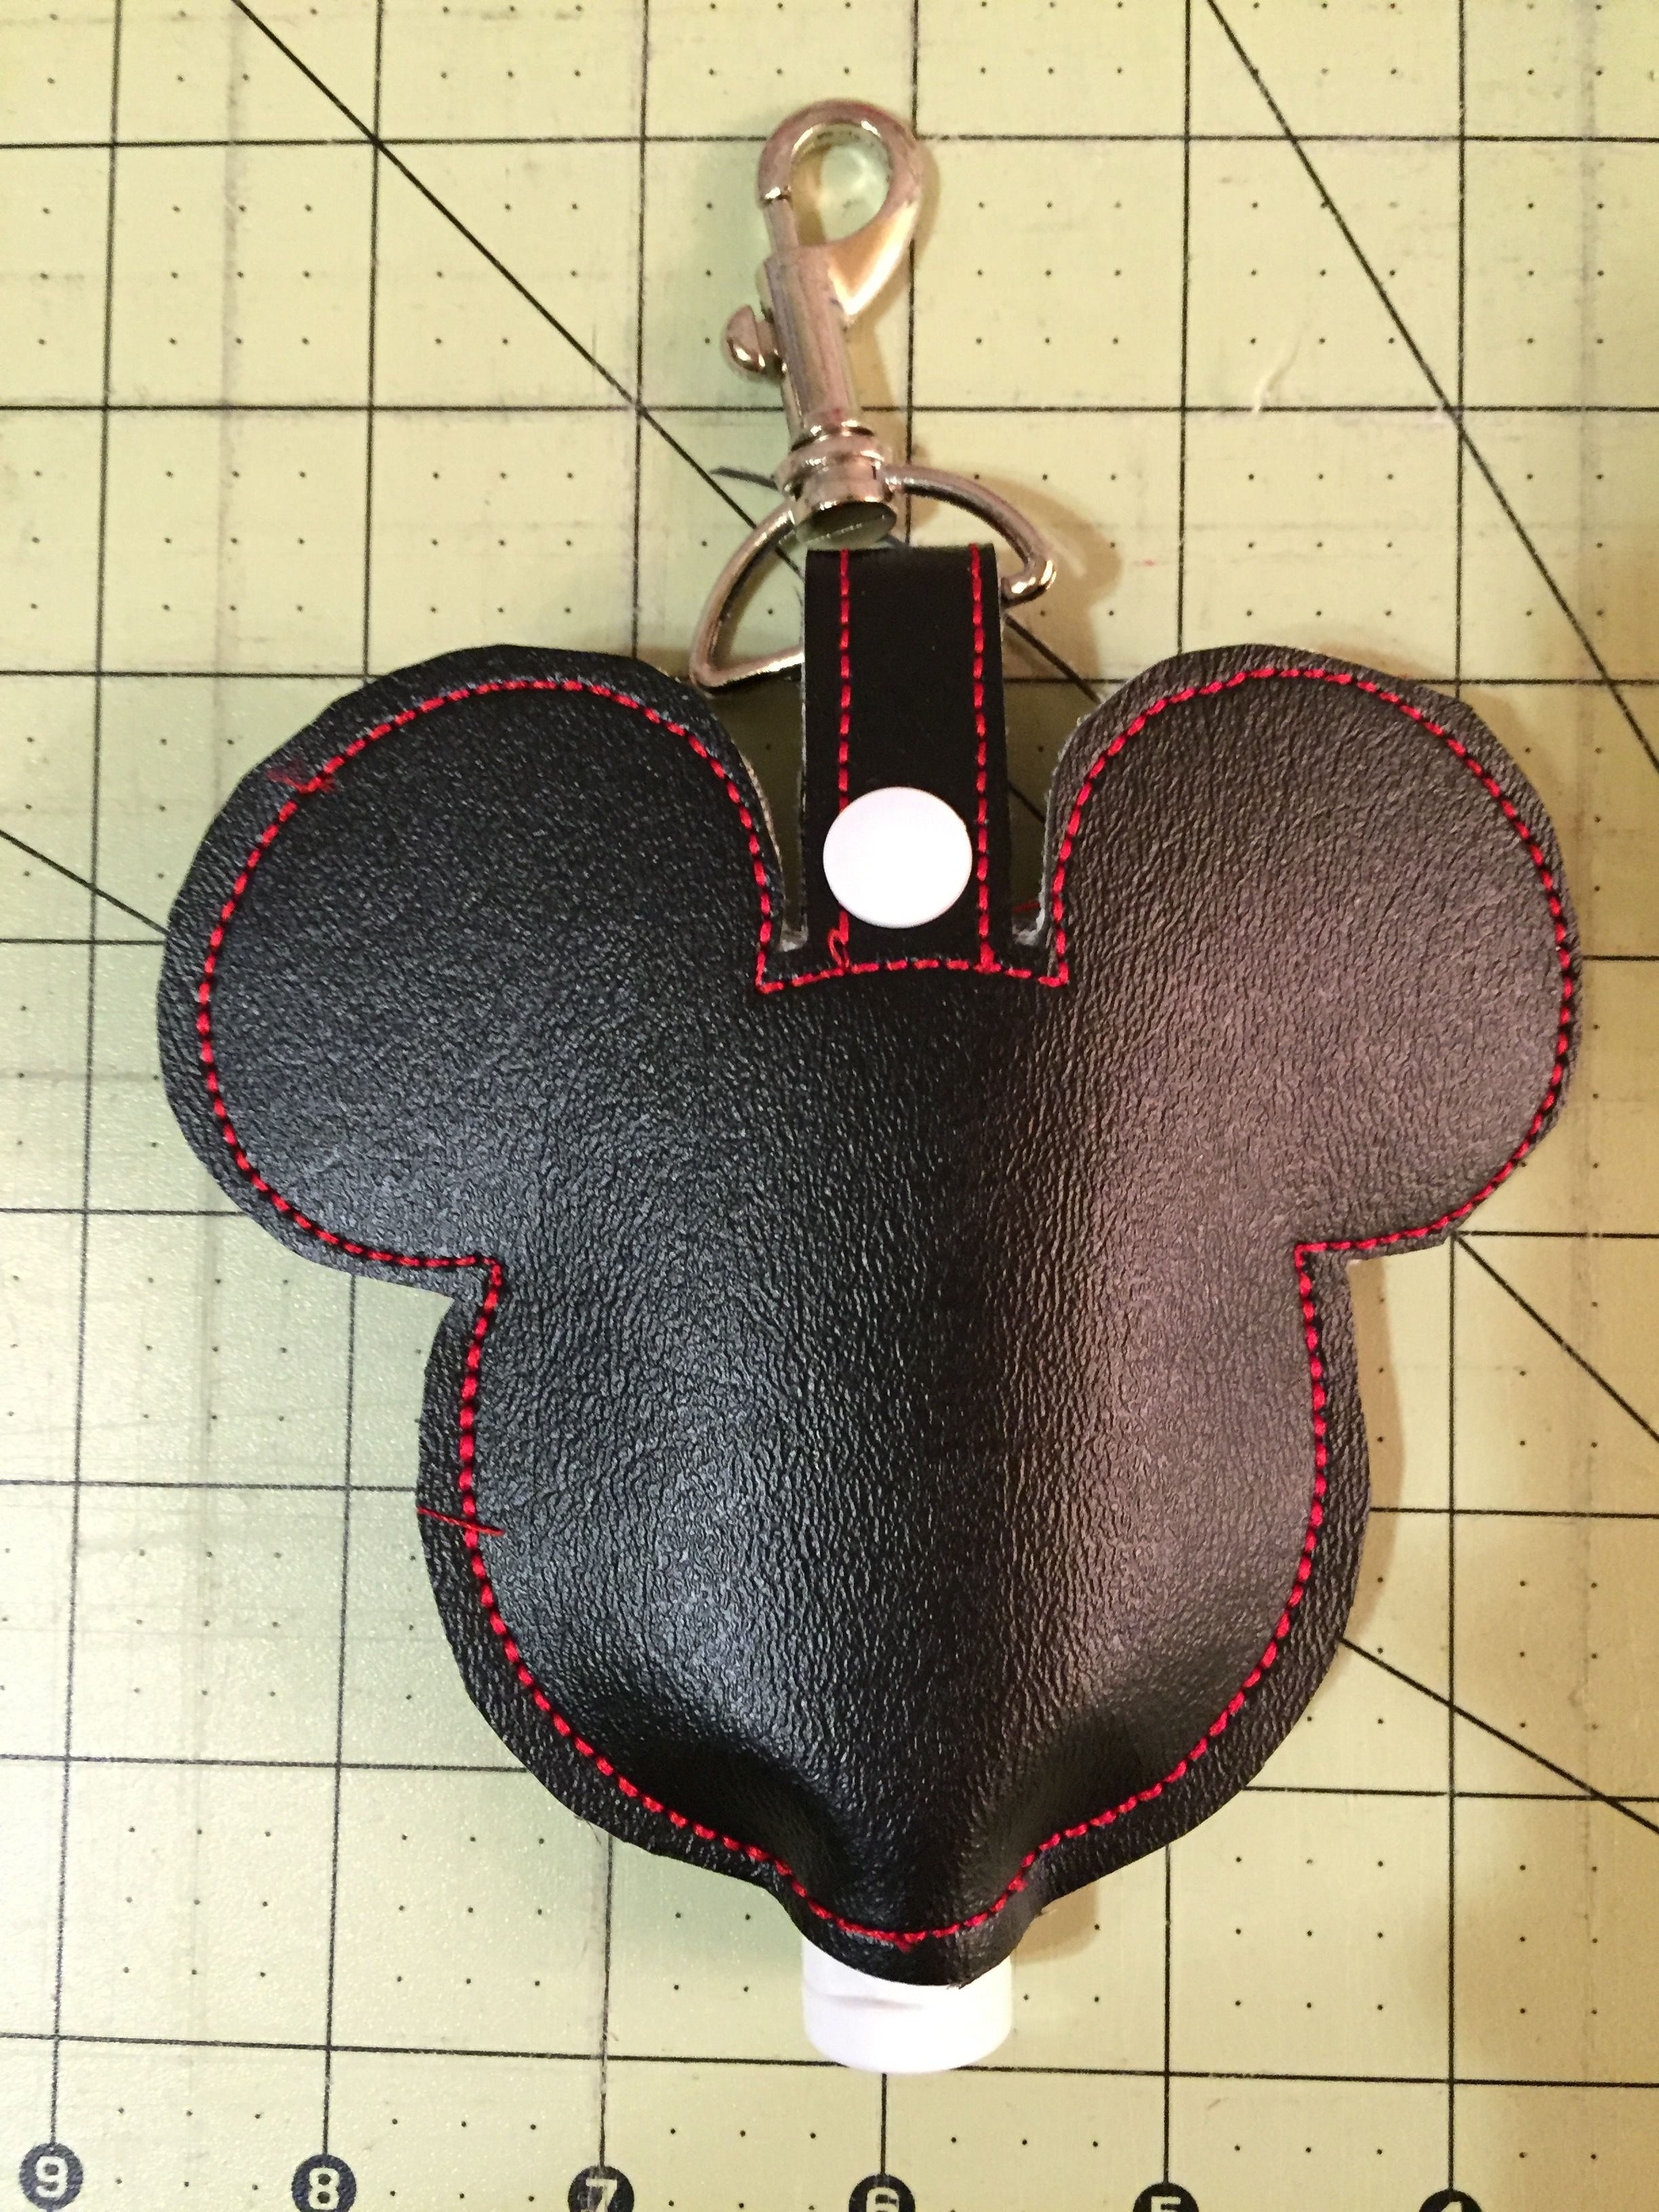 Ith Mickey Mouse Machine Embroidery Projects Mickey Hands Hand